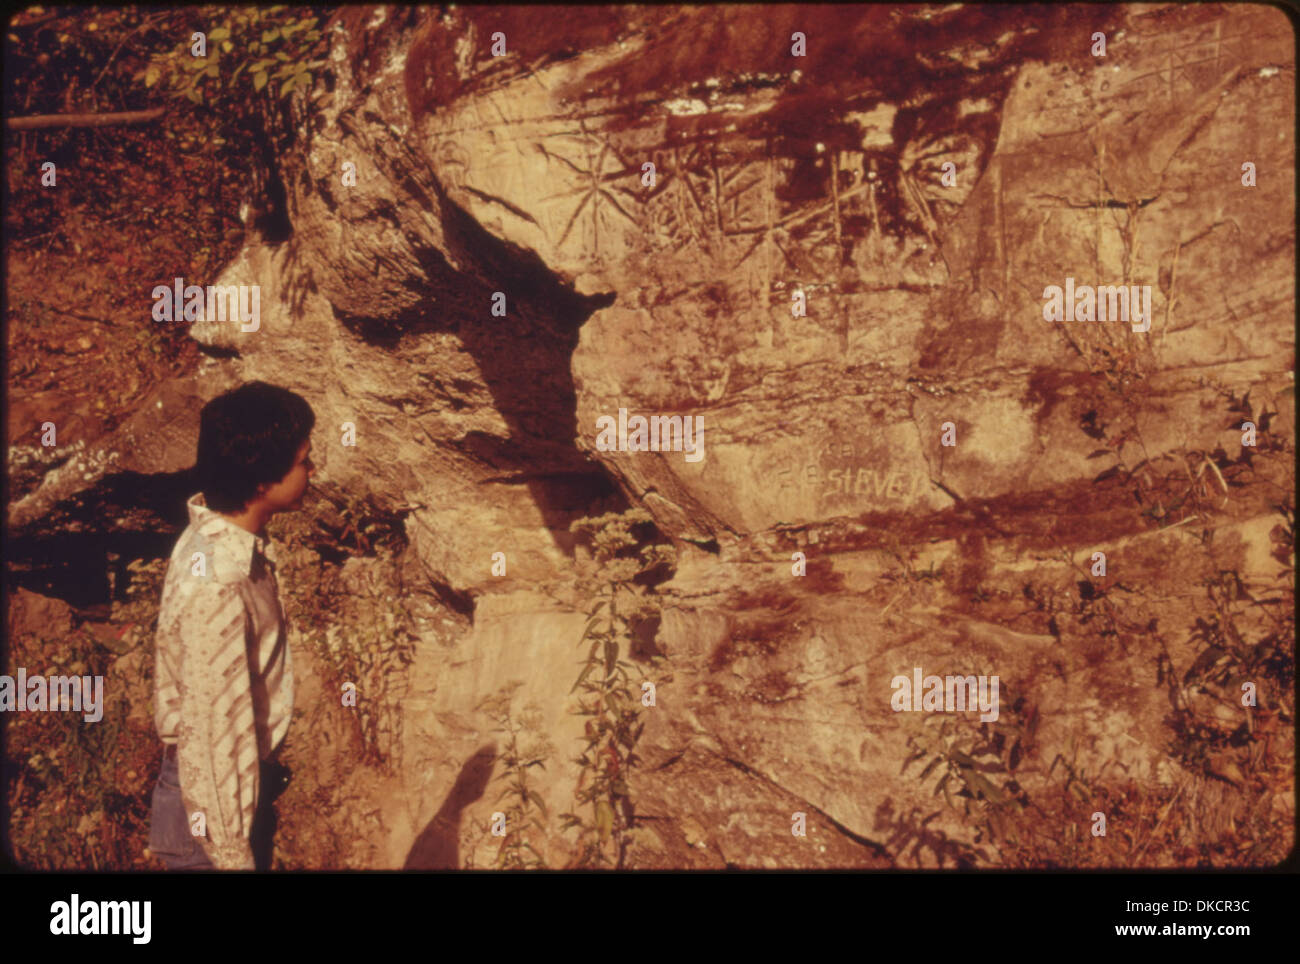 RON MCKINNEY, 22, A POTAWATOMIE-KICKAPOO WHOSE INDIAN NAME IS MAHKUK, IS SEEN LOOKING AT INDIA PETROGLYOHS. MENTIONED... 557118 - Stock Image